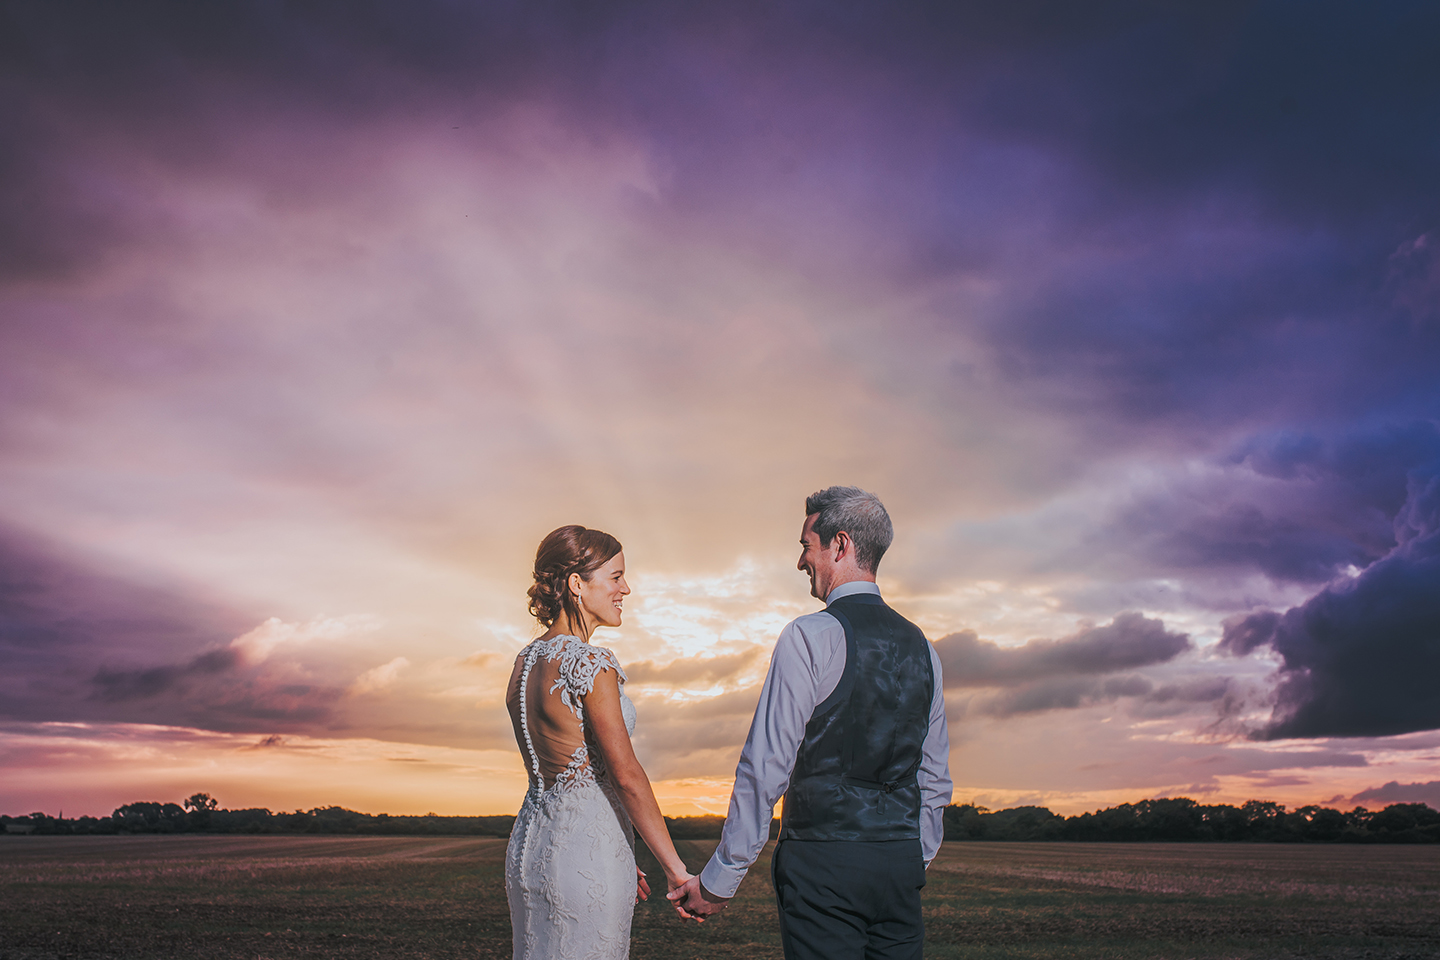 Newlyweds make the most of the sunset at this countryside wedding venue in Cambridgeshire